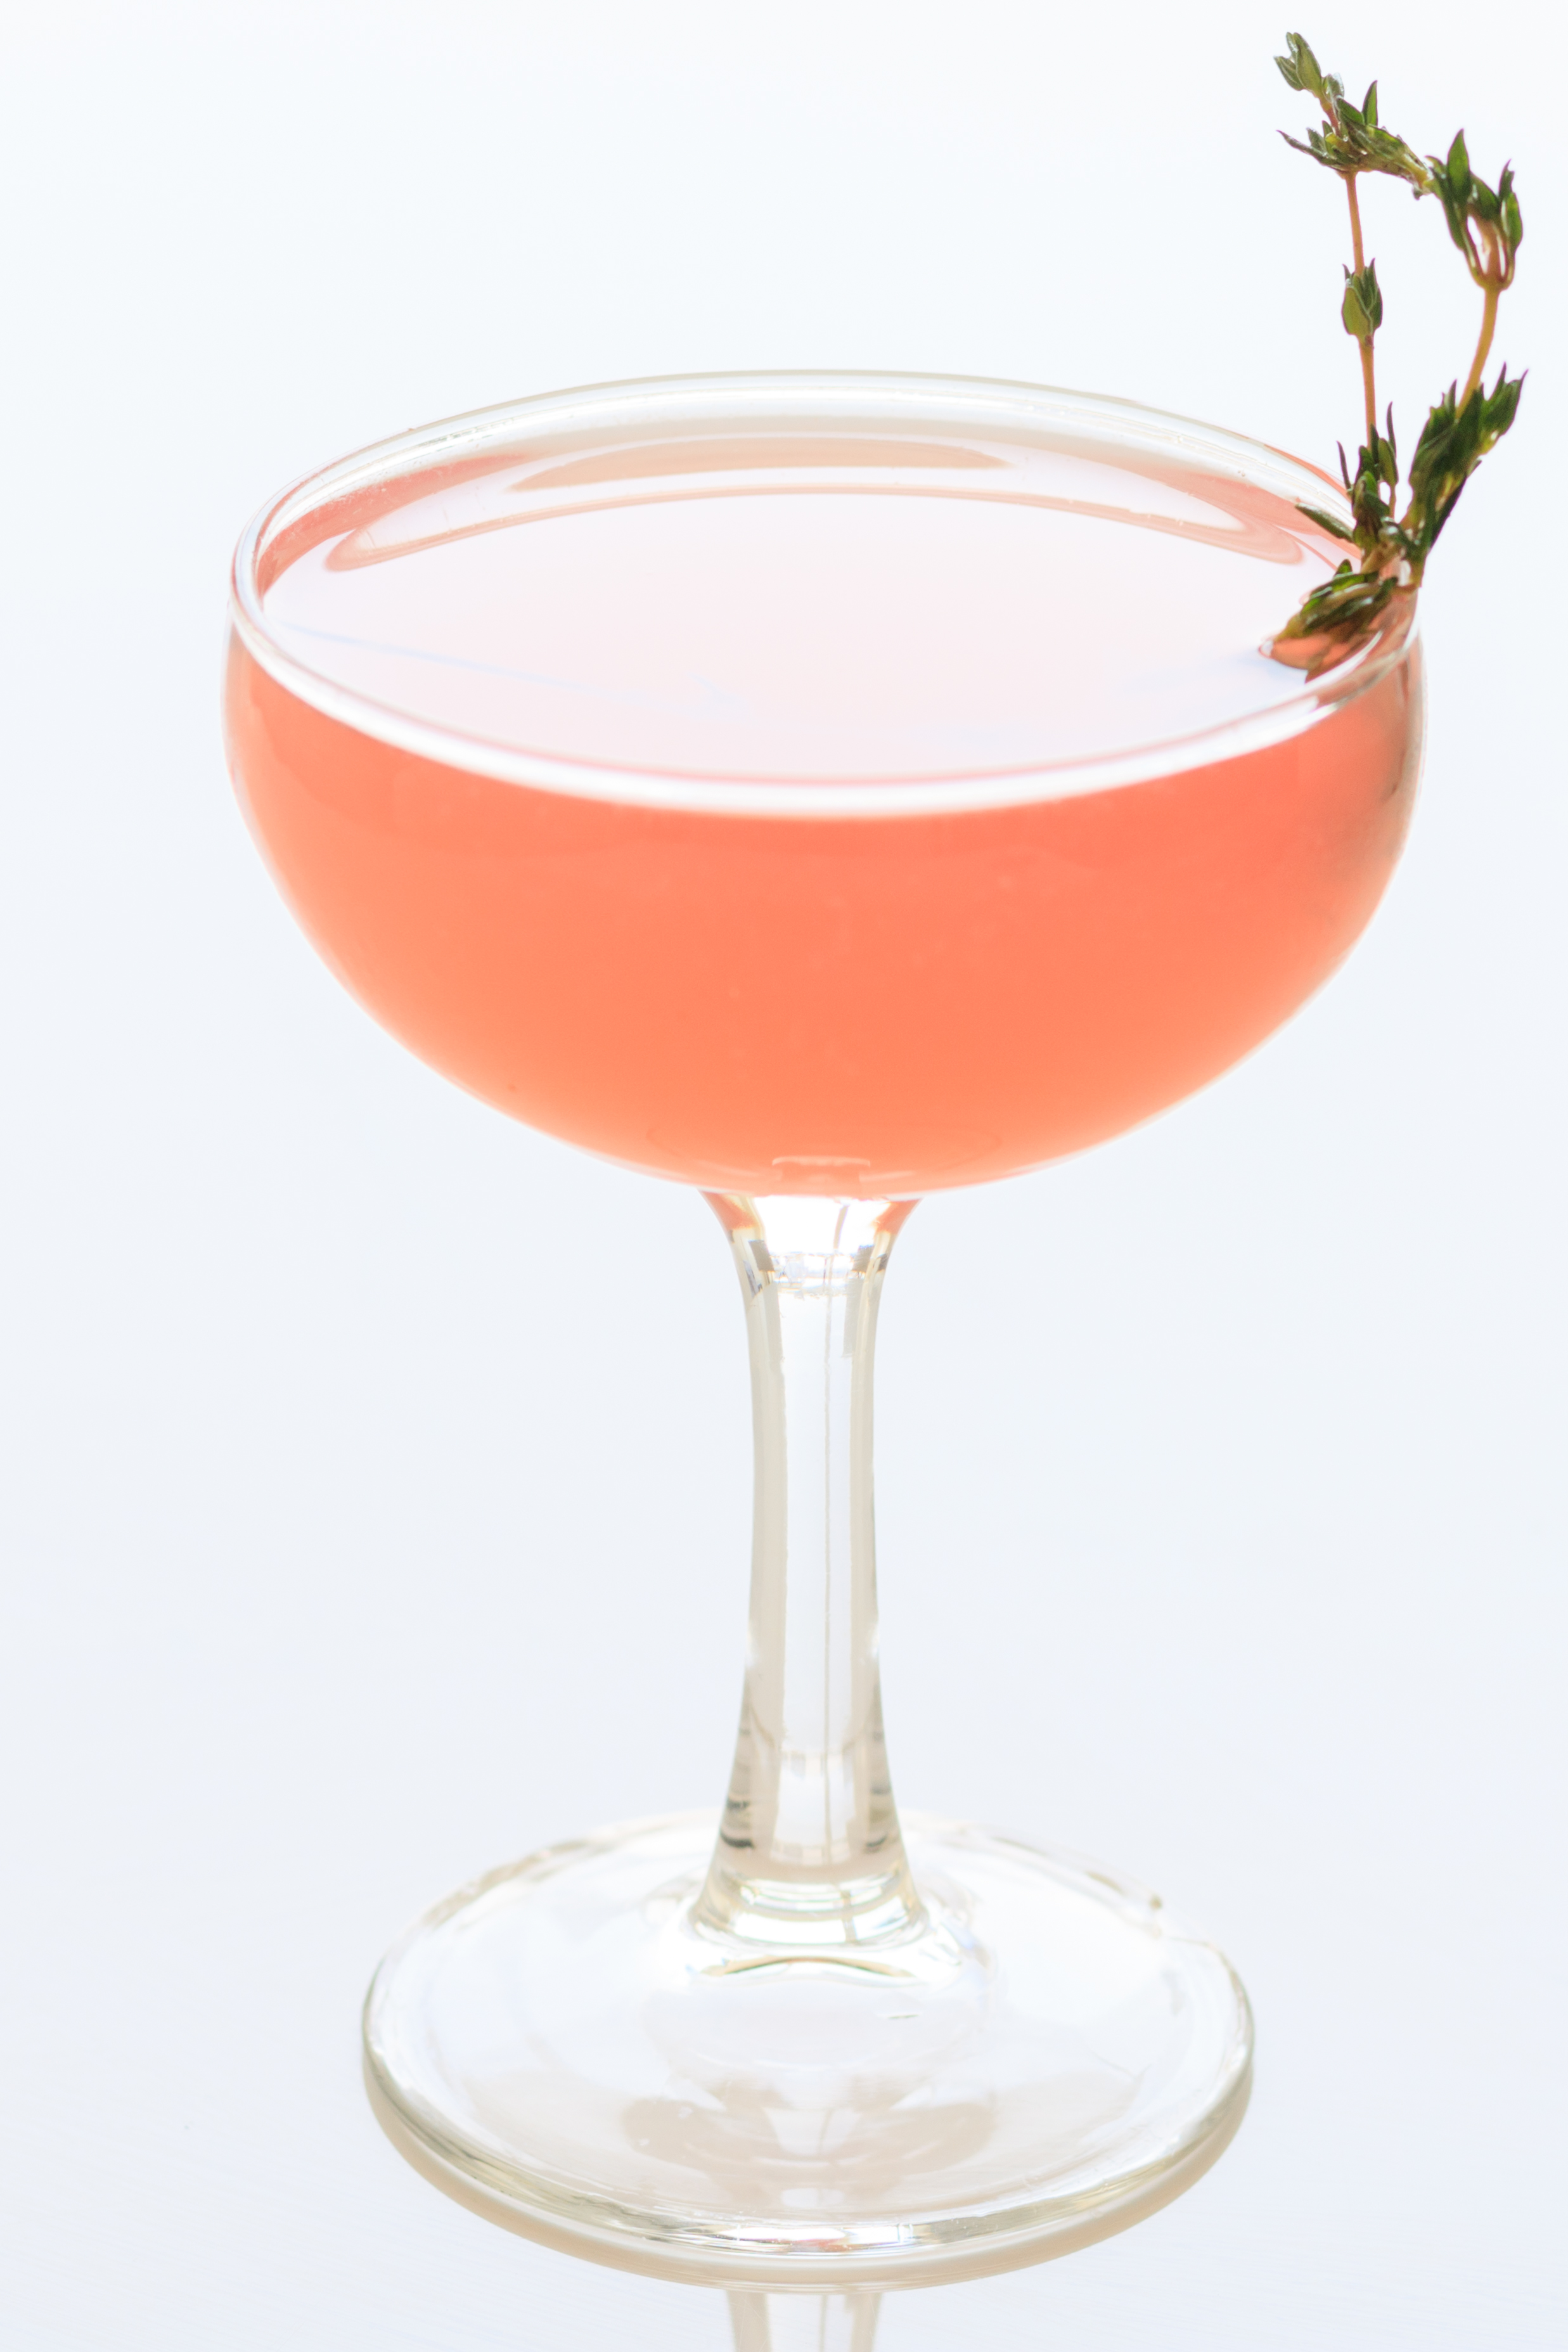 Jazzmín - 1 oz Tequila3/4 oz Campari3/4 oz Freshly squeezed lime juice1/2 oz Triple sec